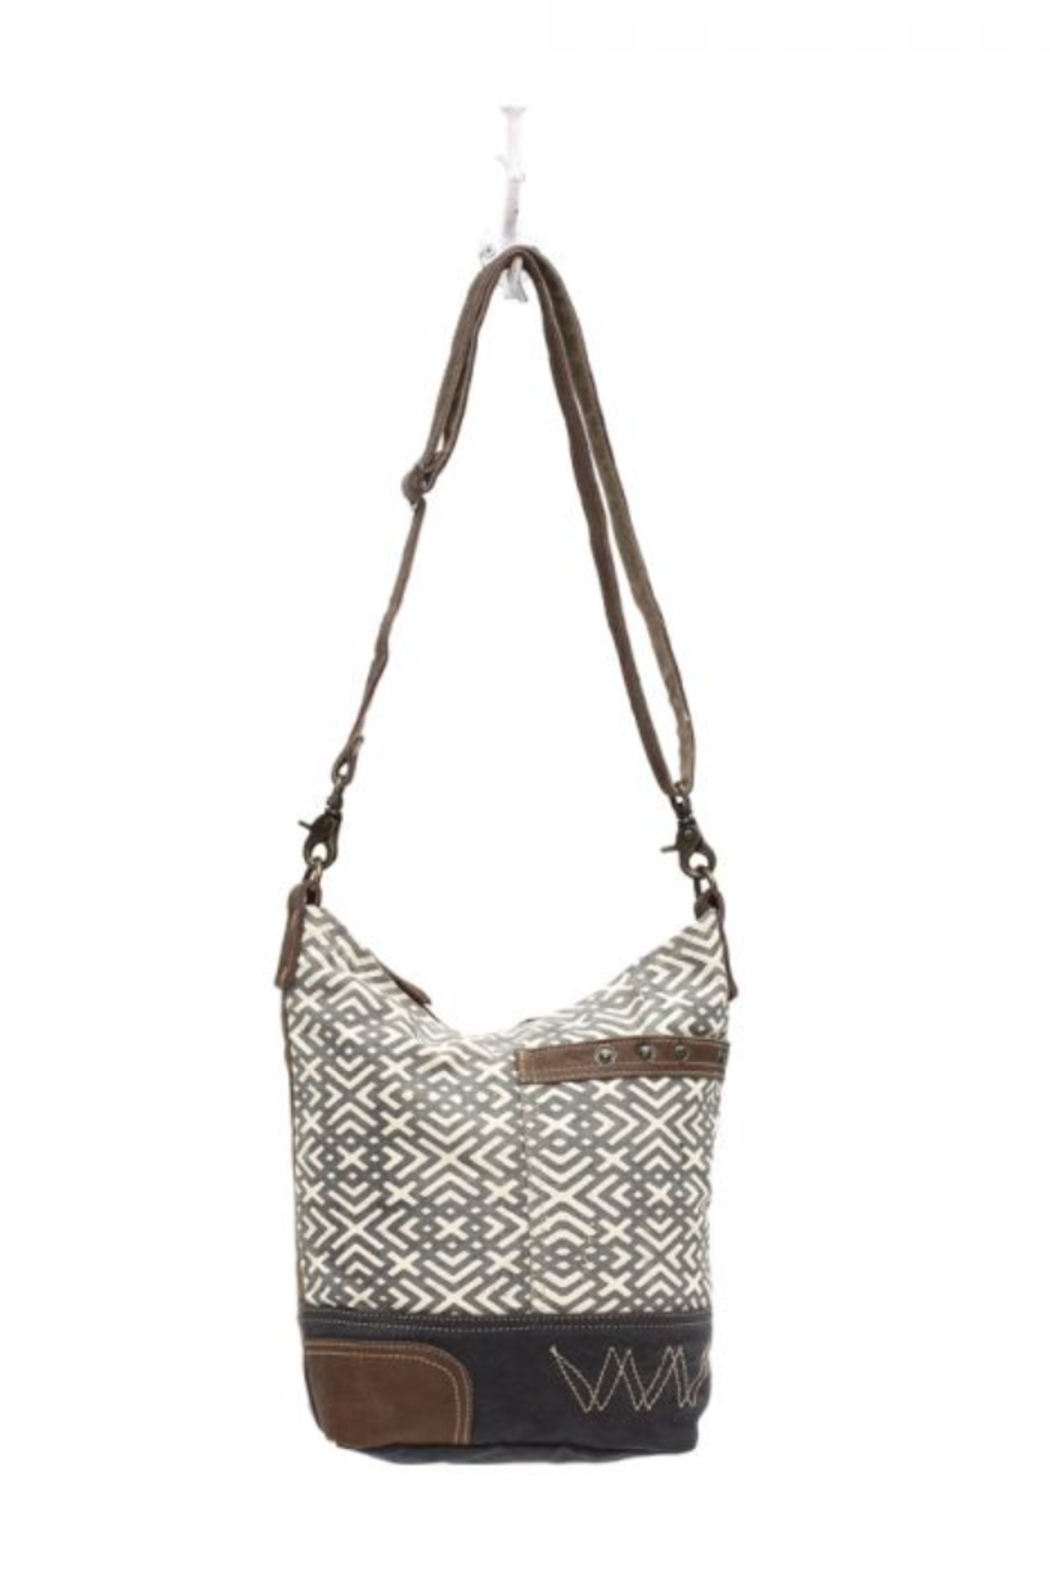 MarkWEST-Myra Bag X Design Shoulder Bag - Main Image